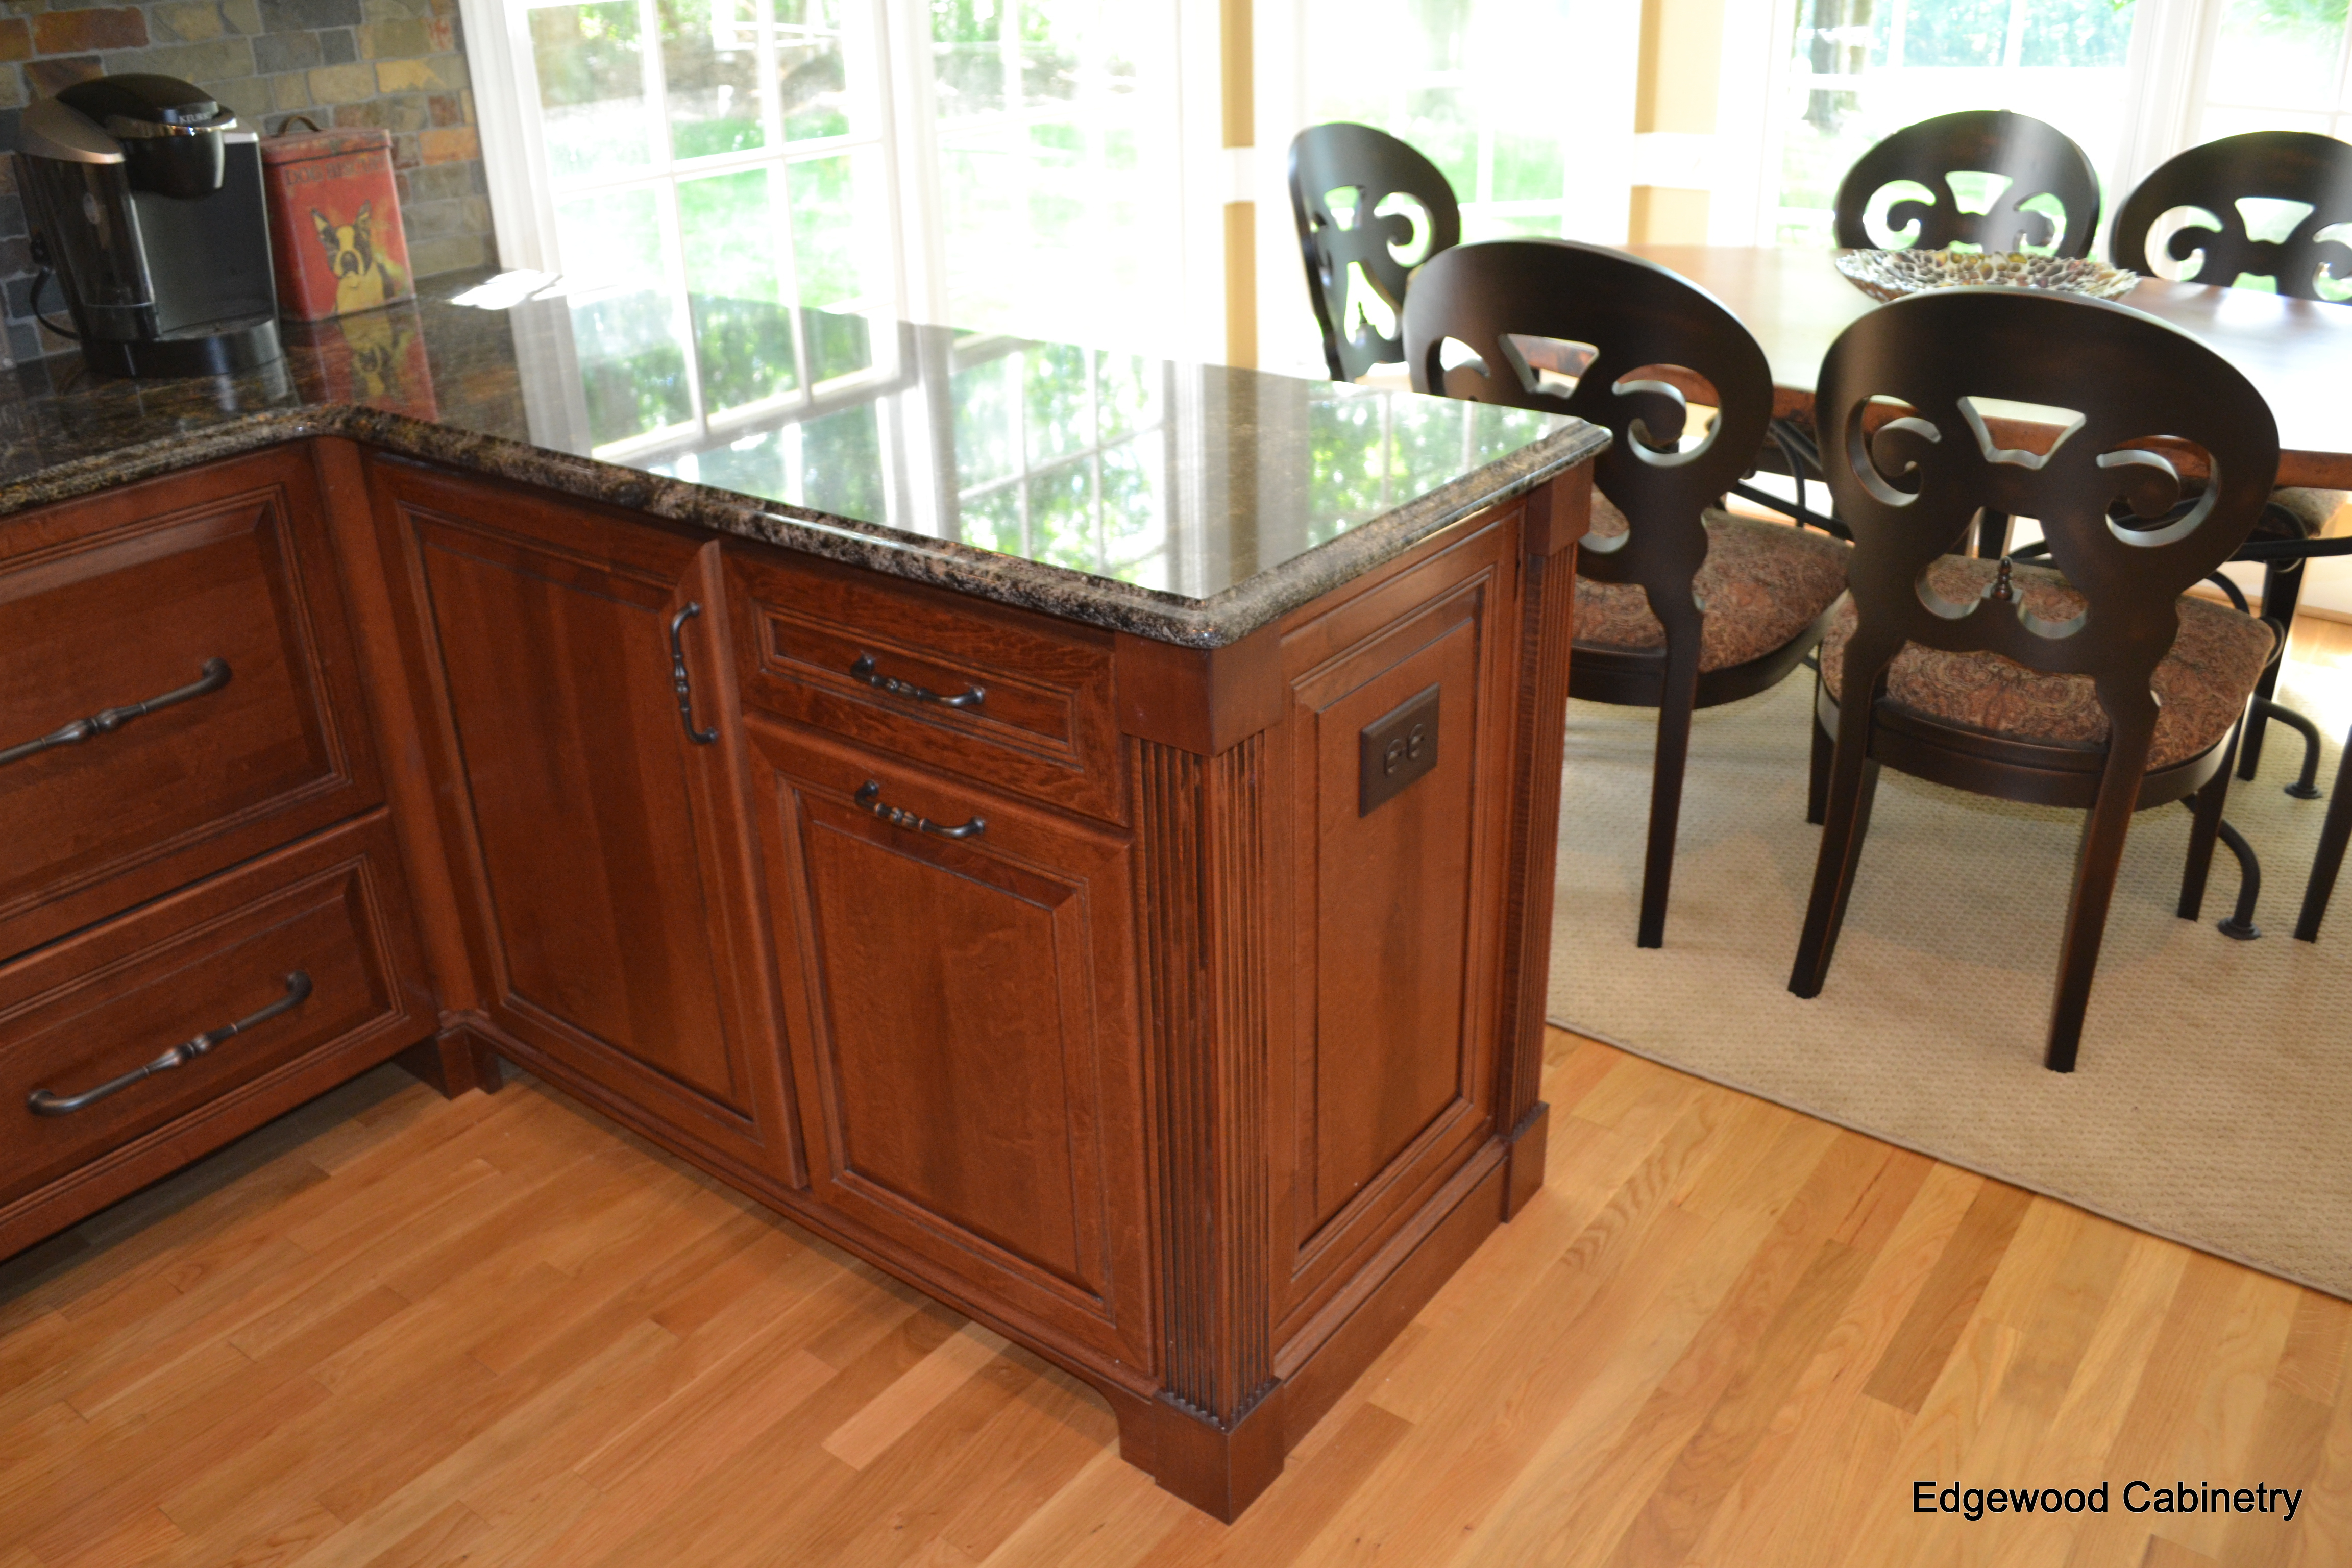 Cabinets or flooring first edgewood cabinetry for Flooring or cabinets first